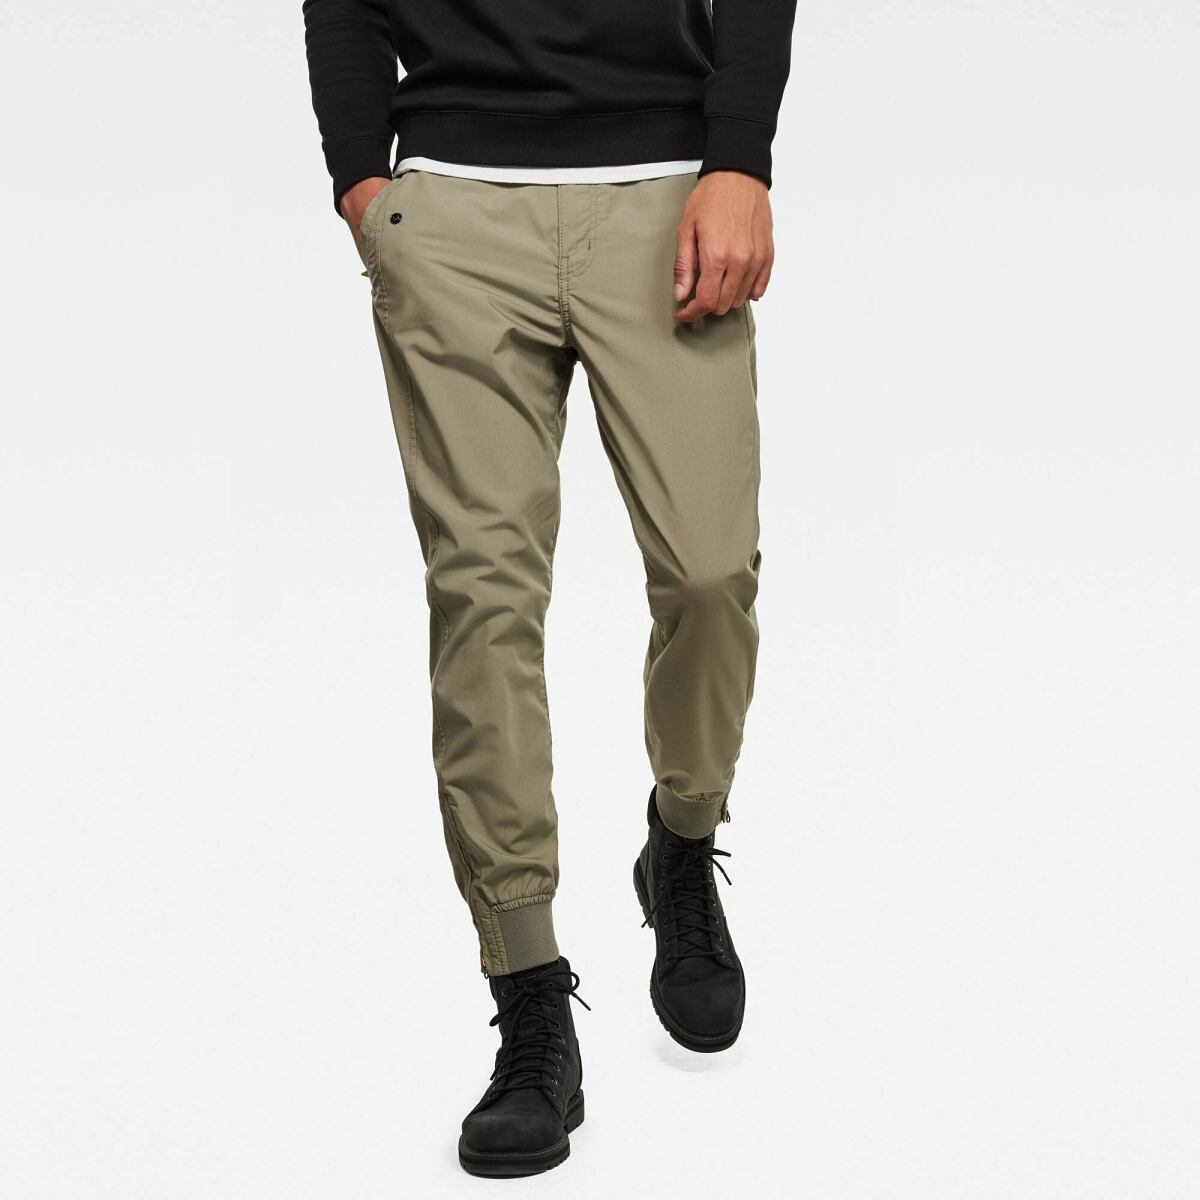 Green Man Pants 3D Relaxed Trainer G-Star MEN